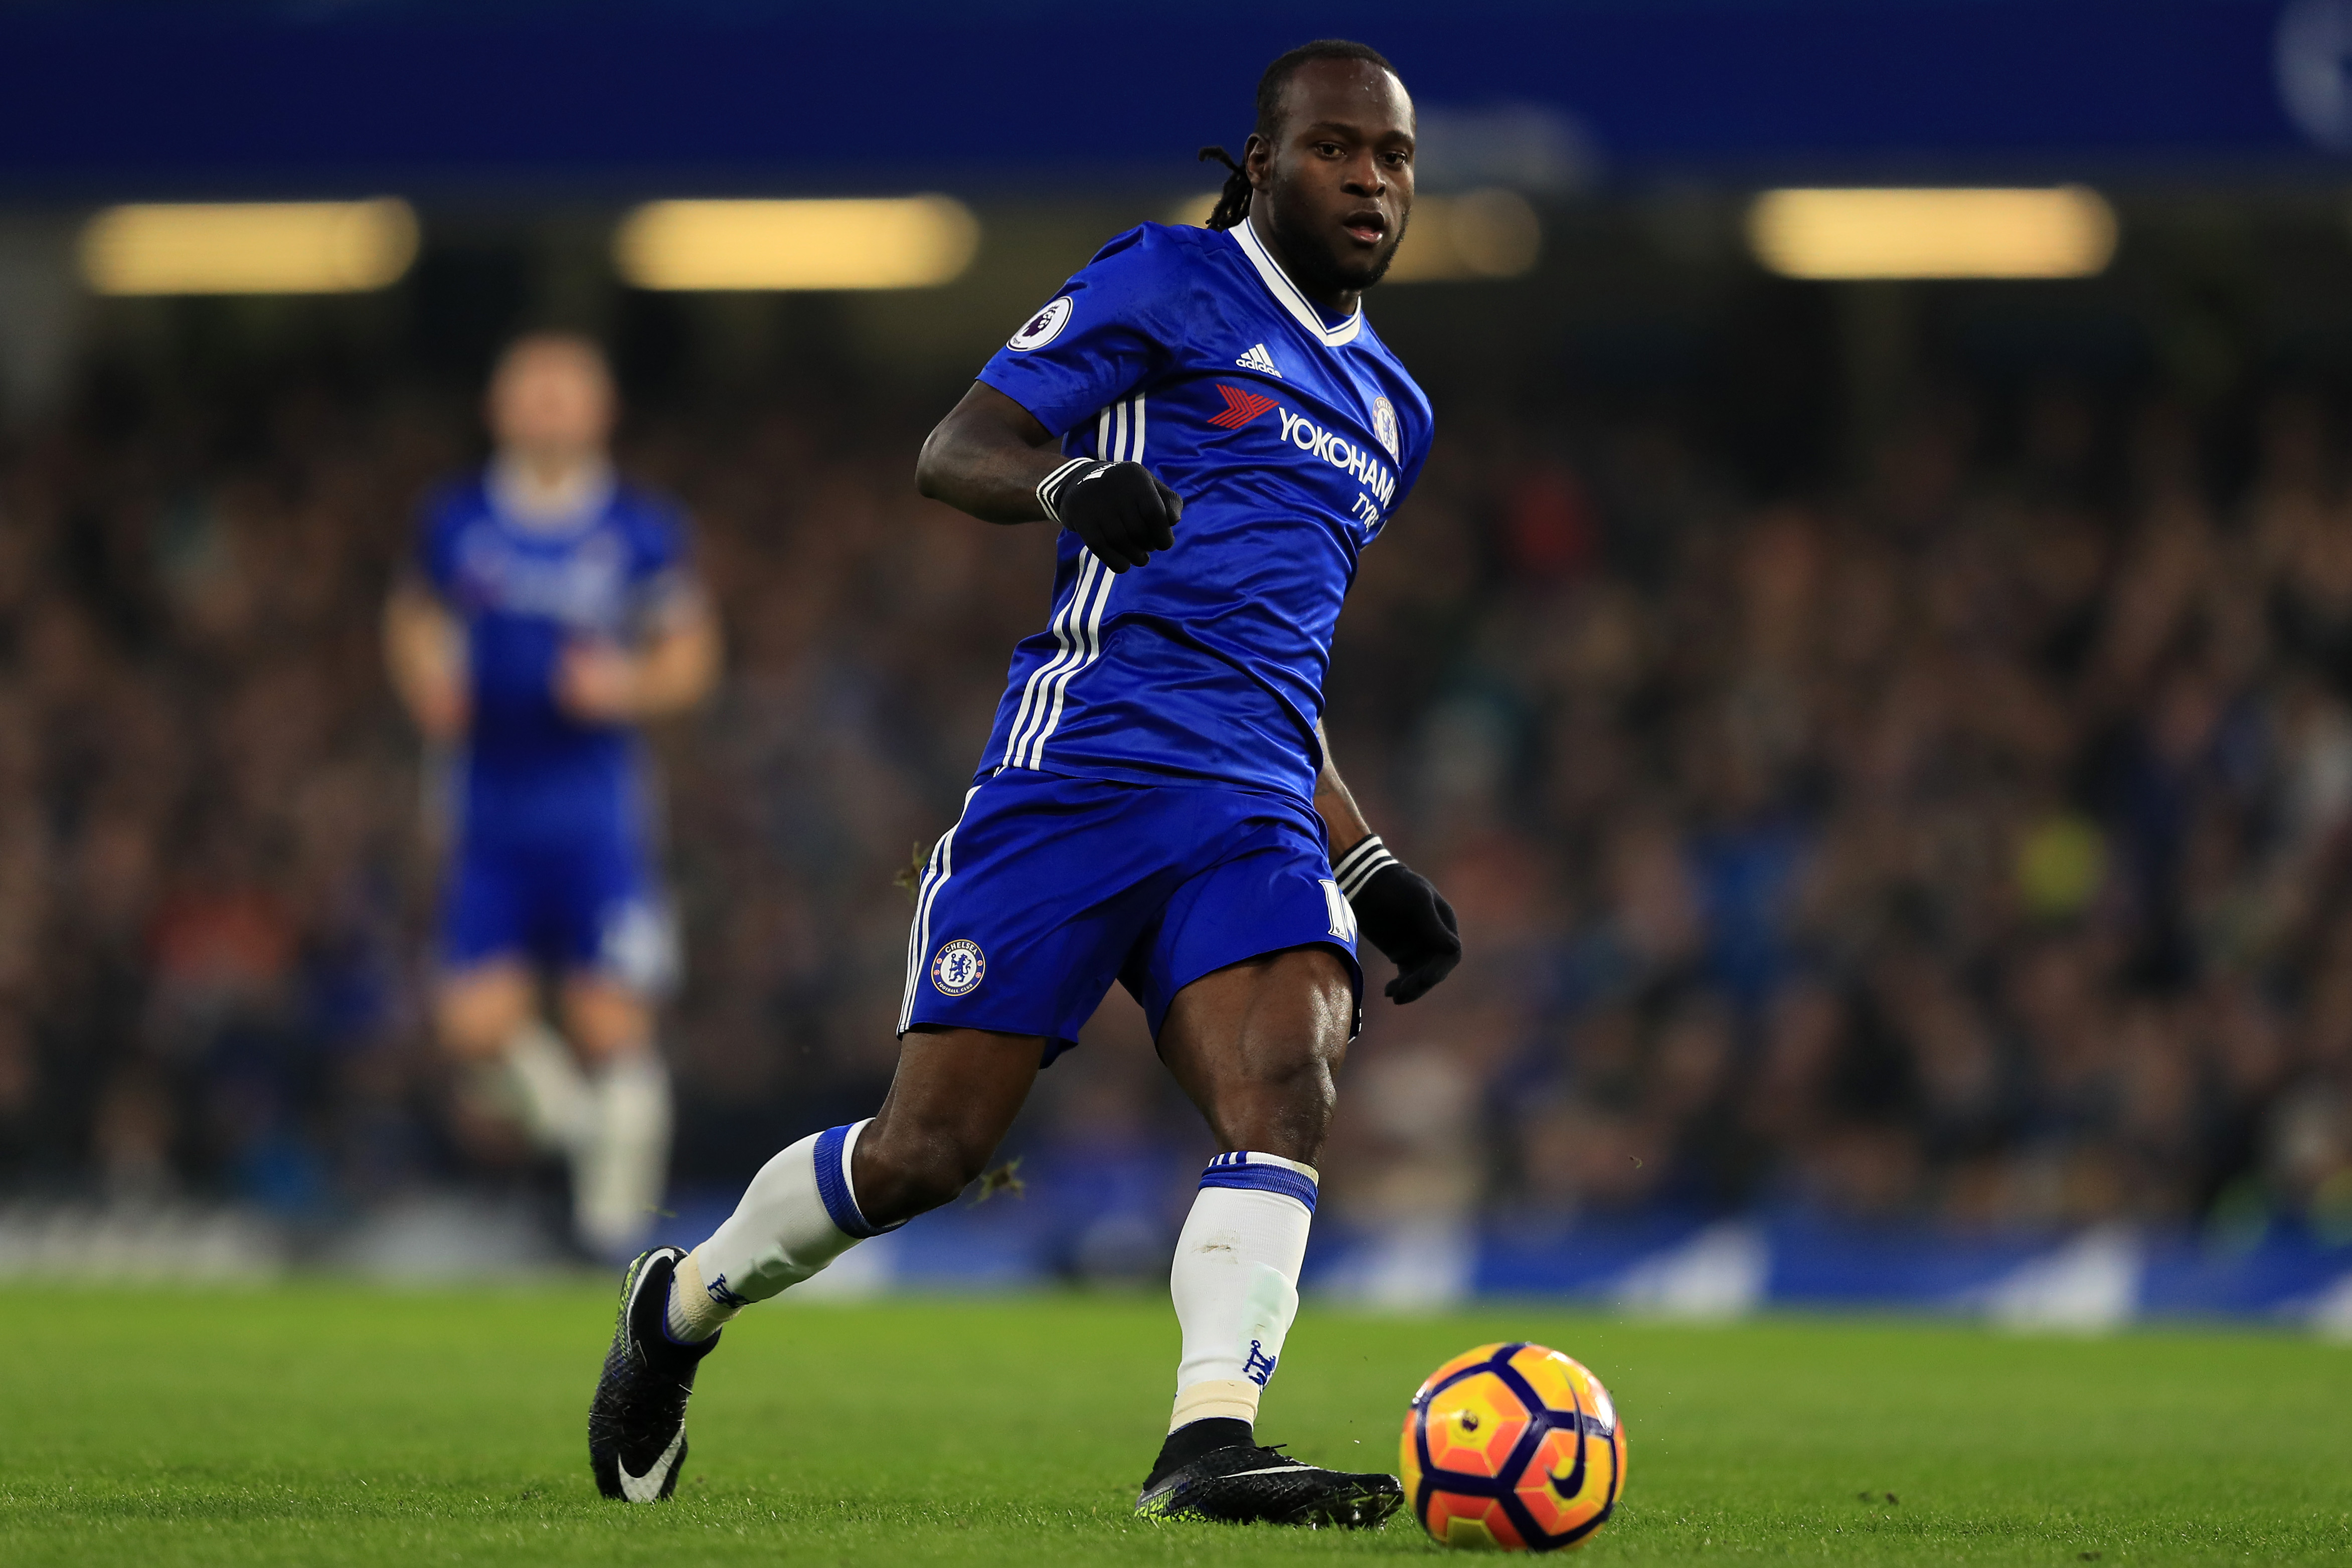 Victor Moses has been one of the beneficiaries of Conte's first season (Photo courtesy Richard Heathcote/Getty Images)